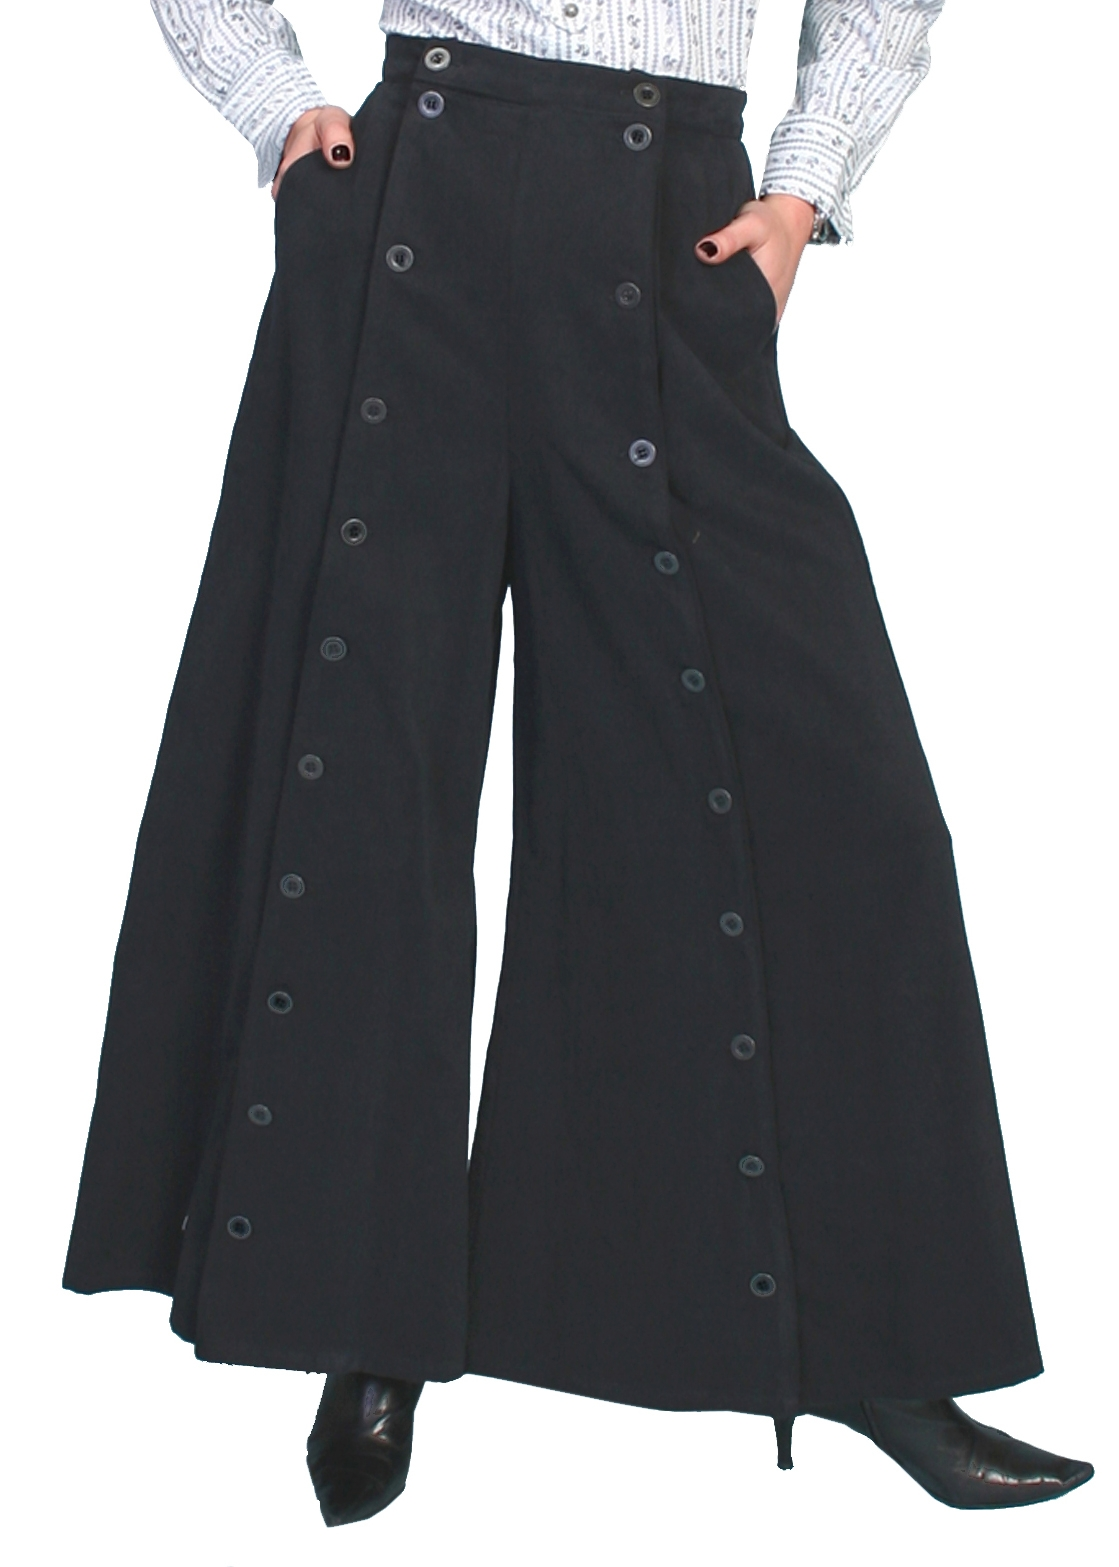 This Scully USA made Brushed twill Womens black riding pants are so comfortable for sitting stranding and riding or an authentic 1800's old west frontier style and fits great with your steampunk clothing.